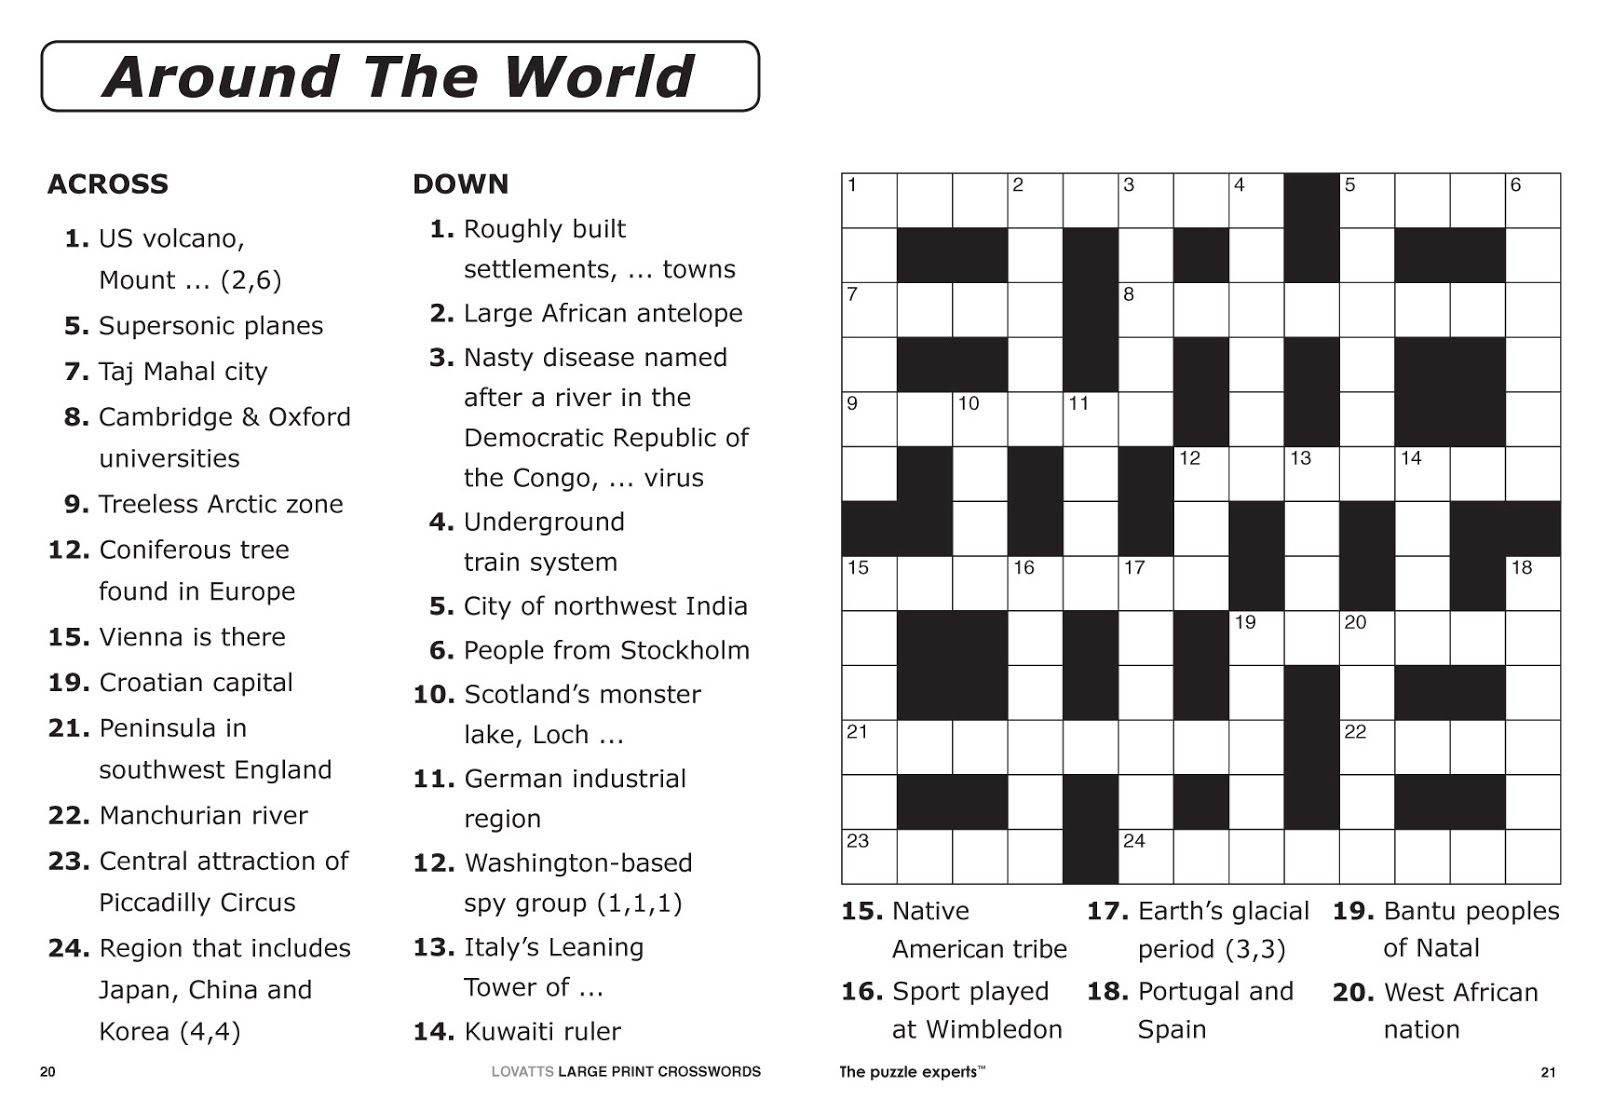 Free Printable Large Print Crossword Puzzles | M3U8 - Printable Sports Trivia Crossword Puzzles